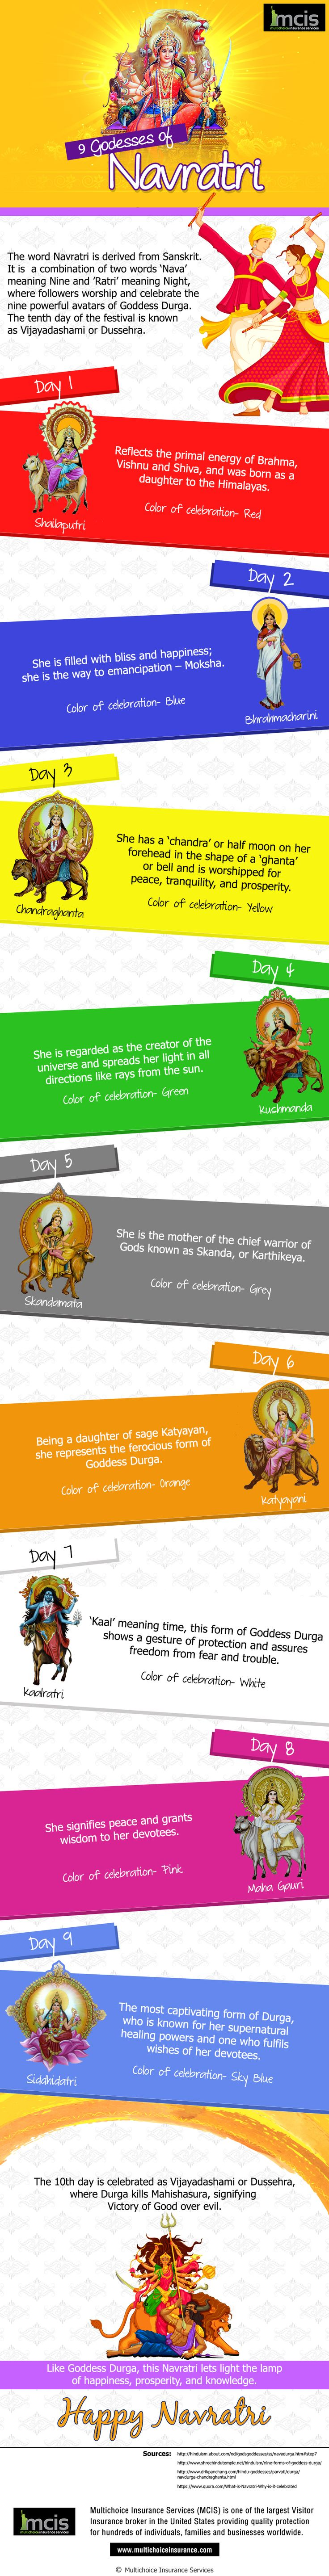 Navratri is a celebration of the 9 avatars of Goddess Durga. This celestial infographic tells you what is their significance and the colors of celebration for each day. #Navratri #Goddesses #Celebration #DurgaPuja #MCIS